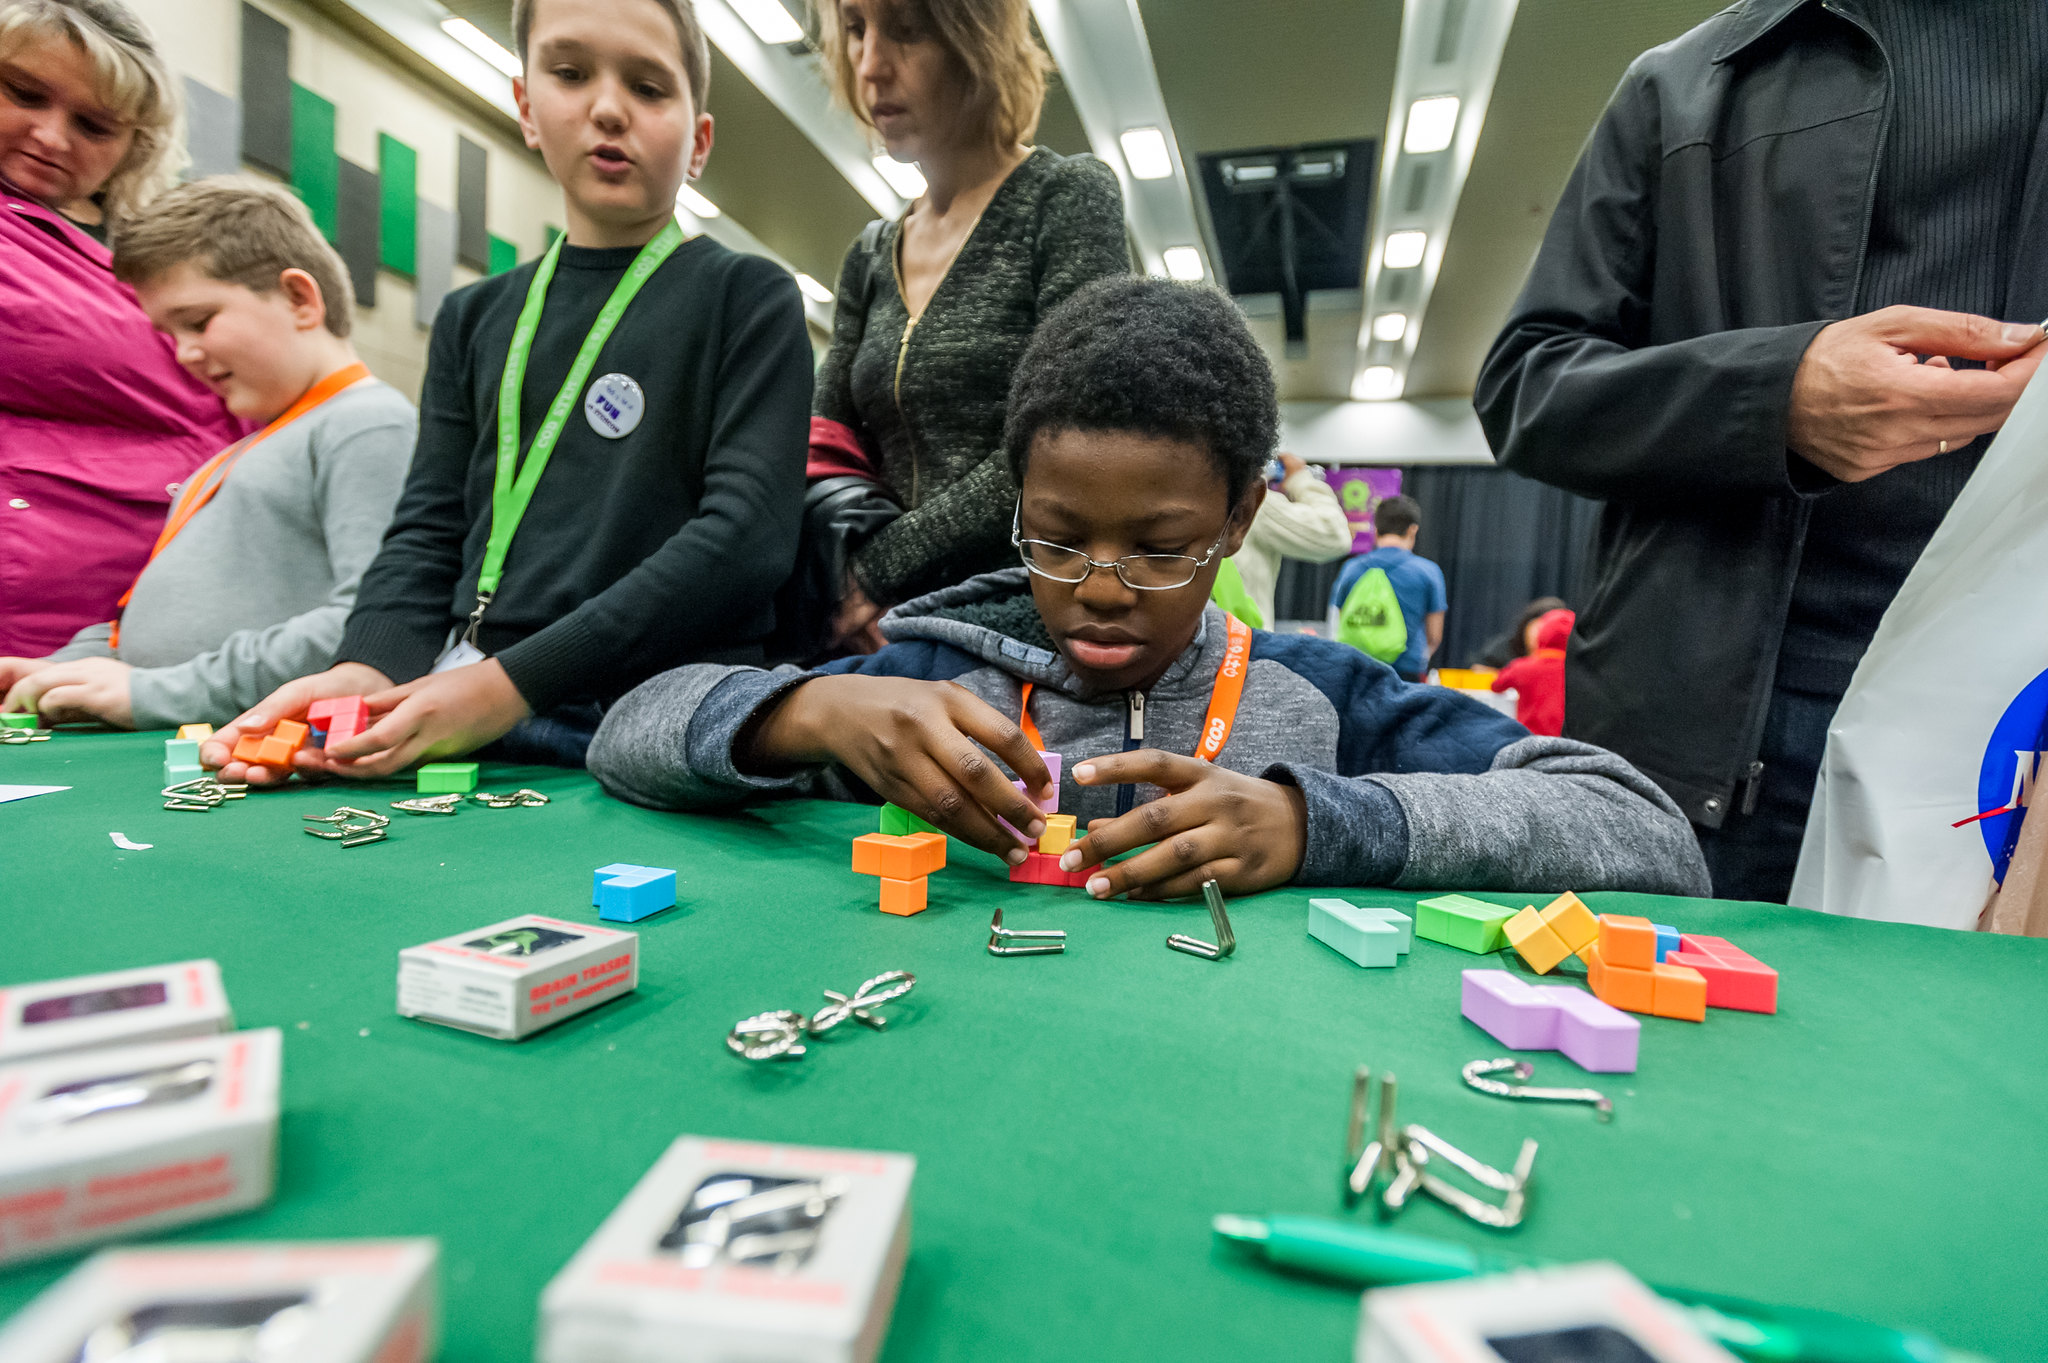 Approximately 2,500 Turn Out for Second Annual STEM-CON at College of DuPage 2017